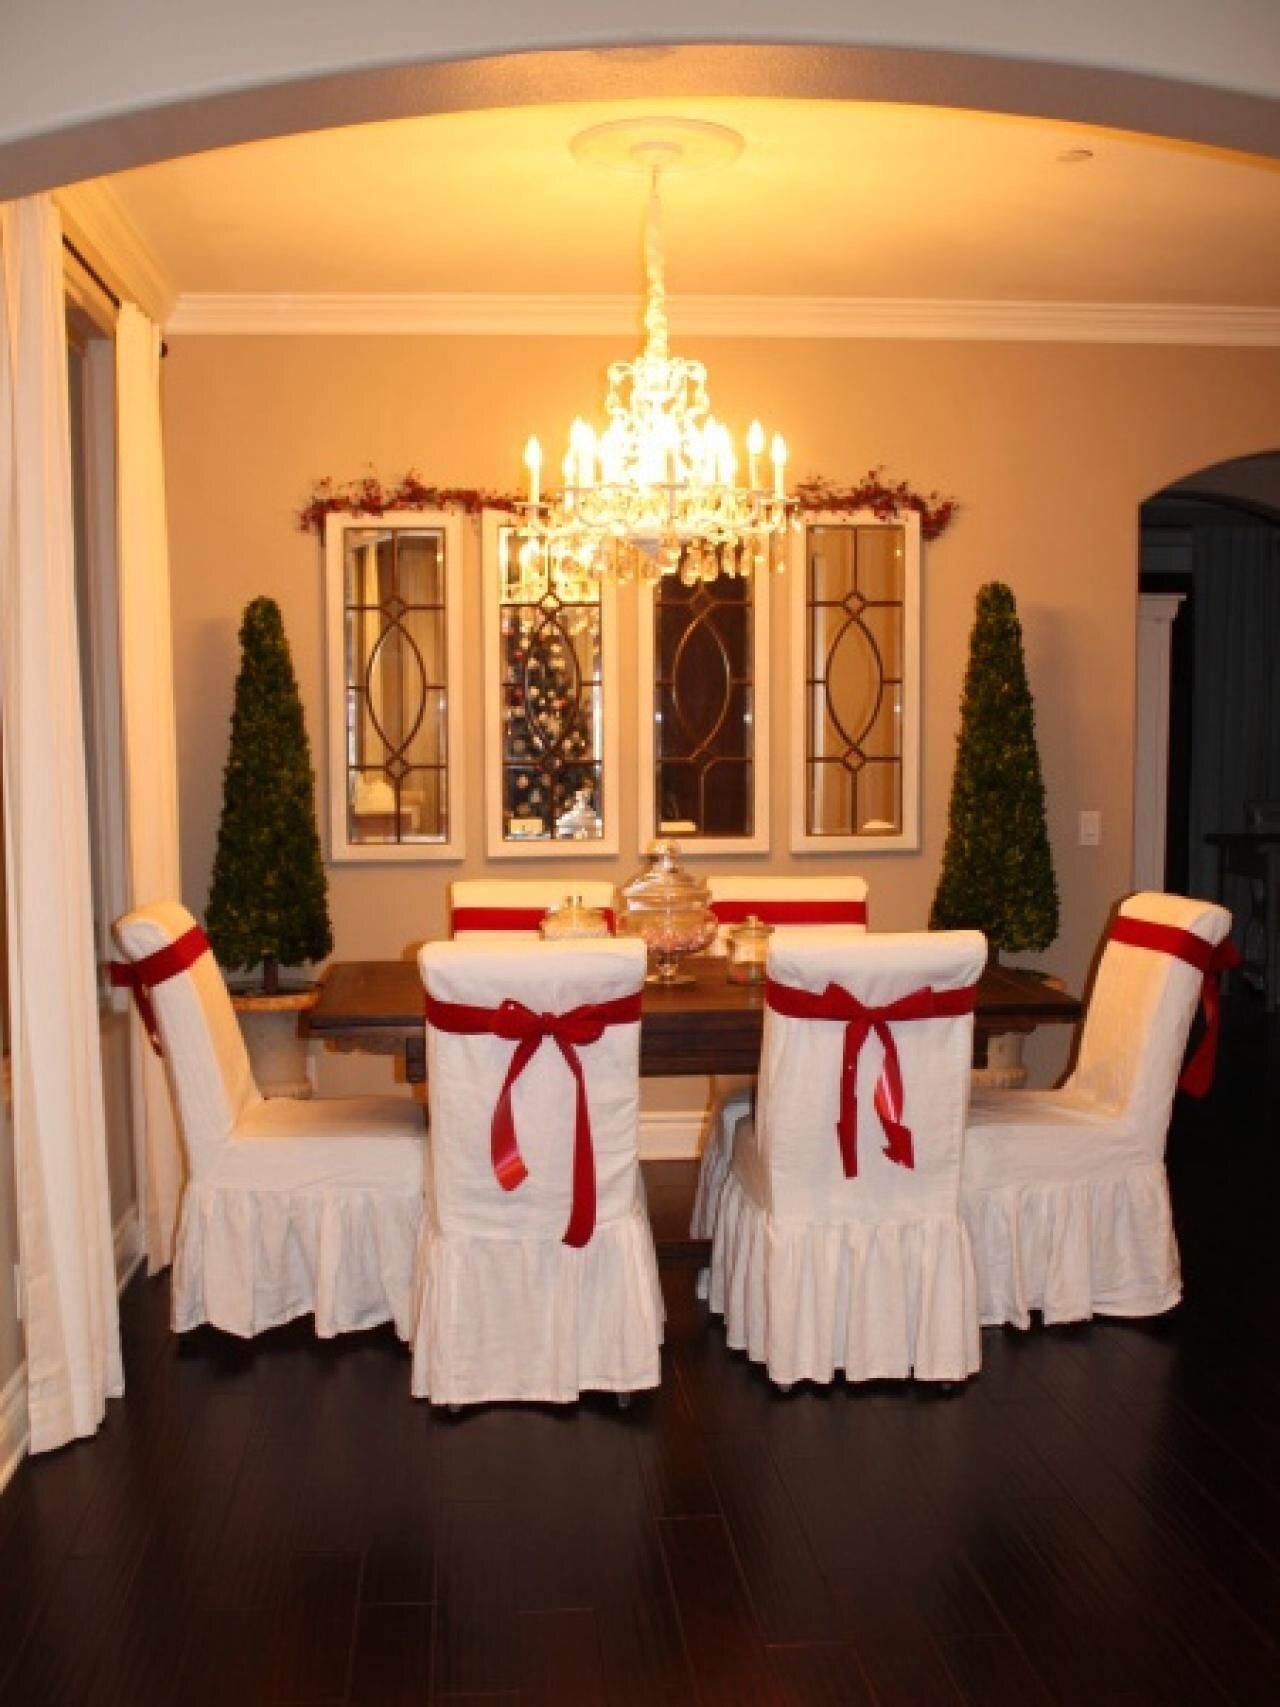 Dining Room Table Toppers Fair Bows Around Chairs  Almost A Crafty Idea Pinterest  Crafty Design Decoration